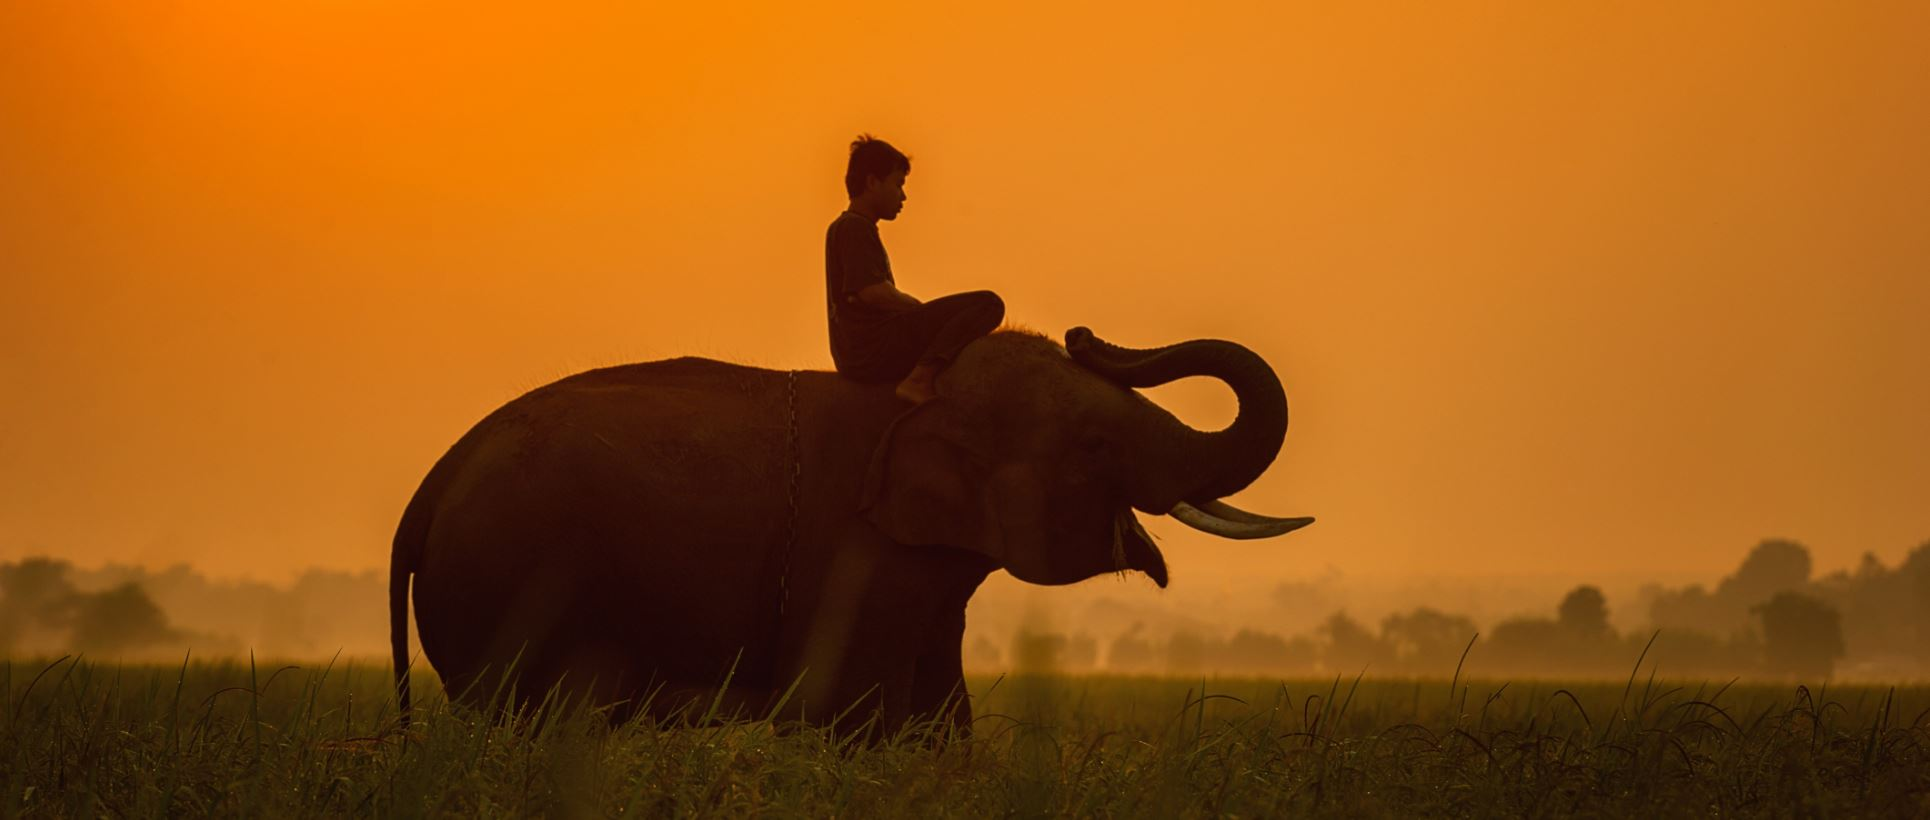 Rider and Elephant in Sunset